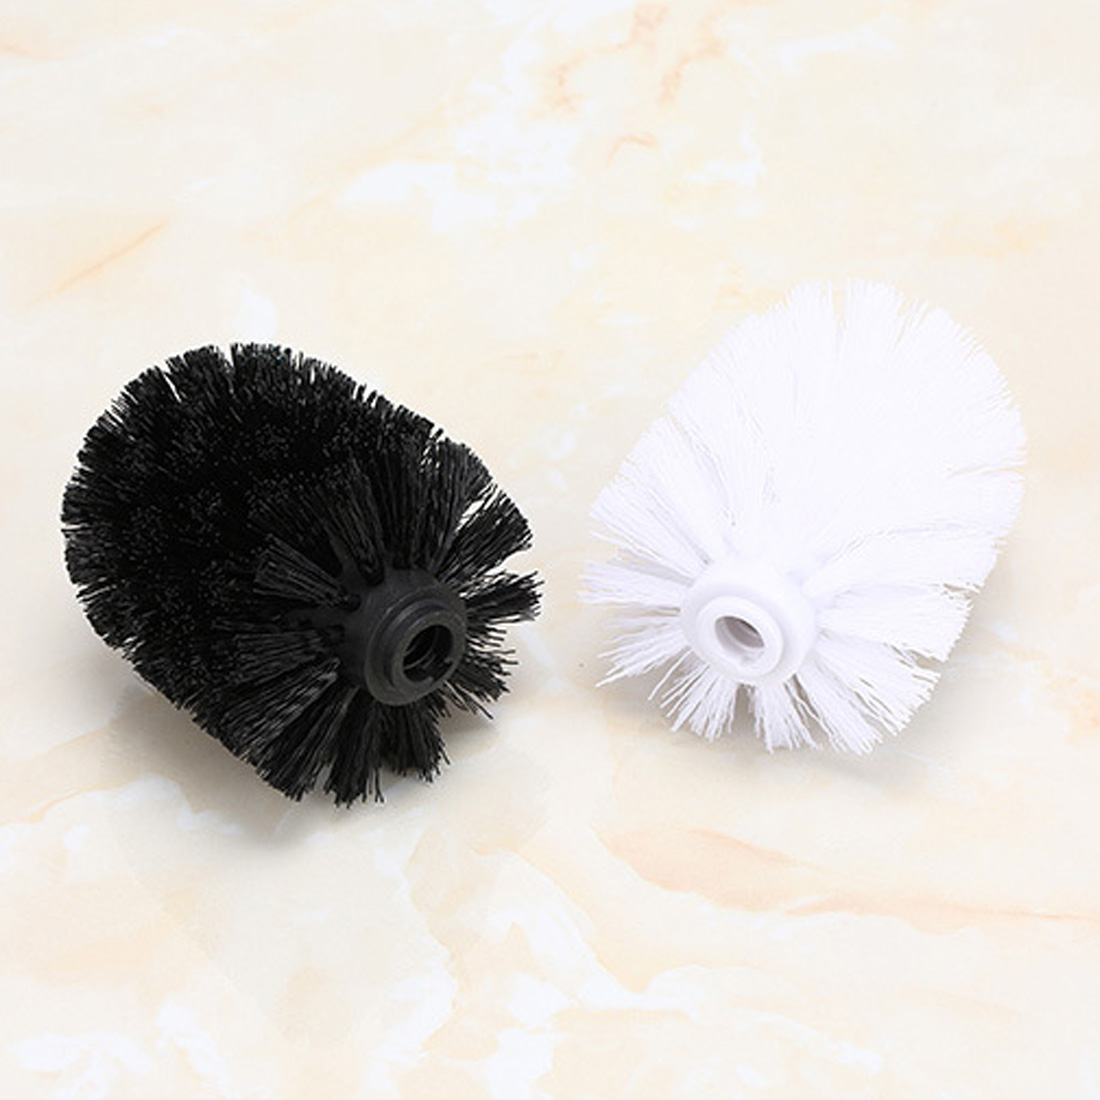 Durable Toilet Brush Head Universal Holder Replacement Tool Cleaning Brush Head For Toilet Bathroom WC Clean Tool Accessory